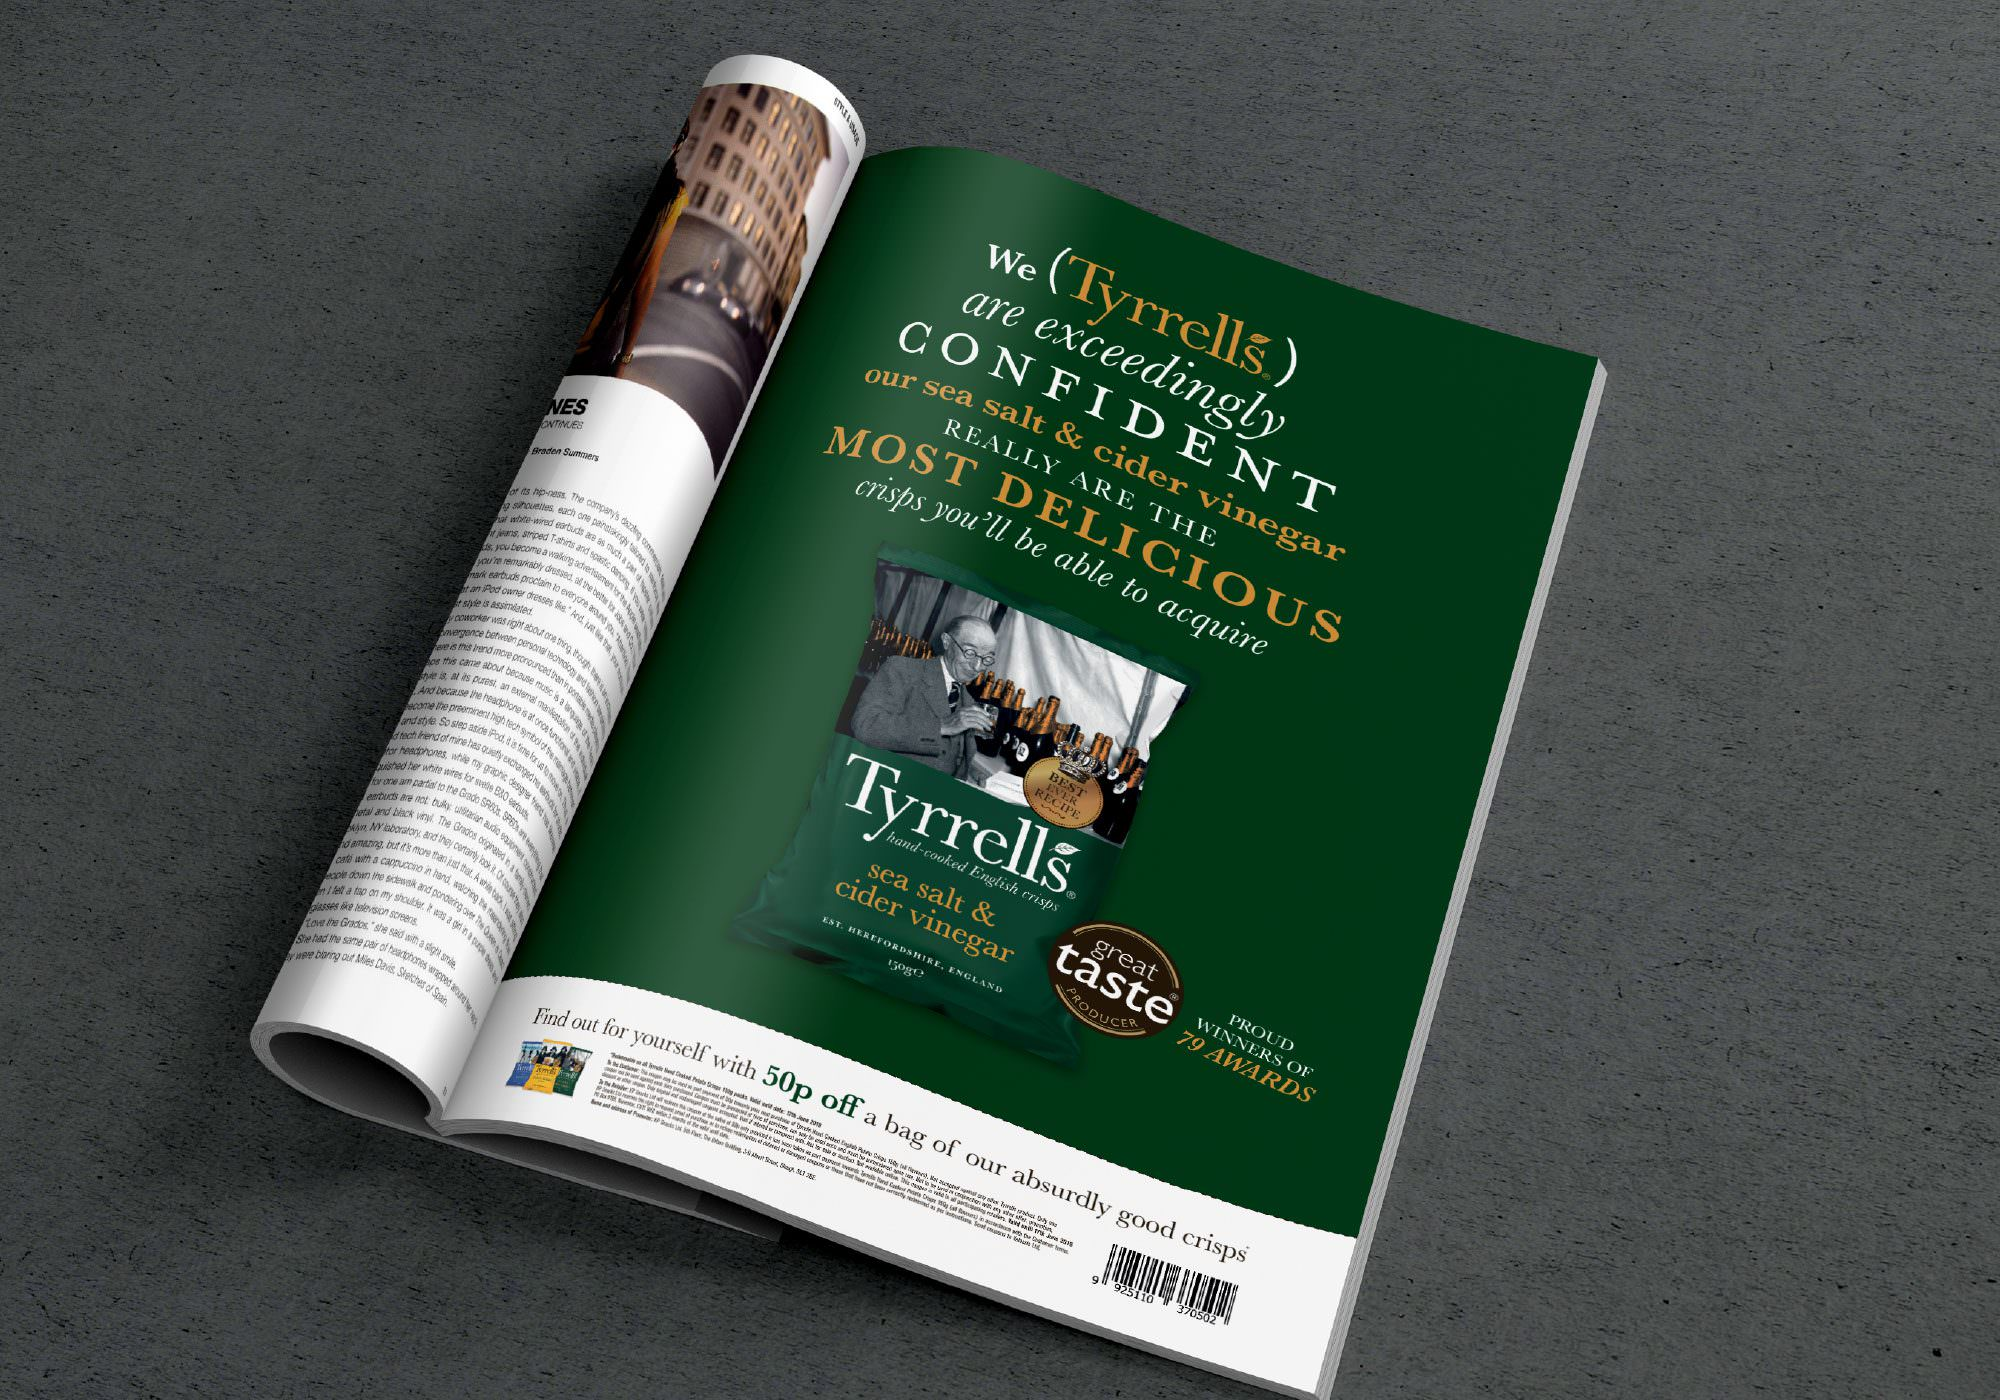 Tyrrells – Website Development & Graphic Design In Shropshire